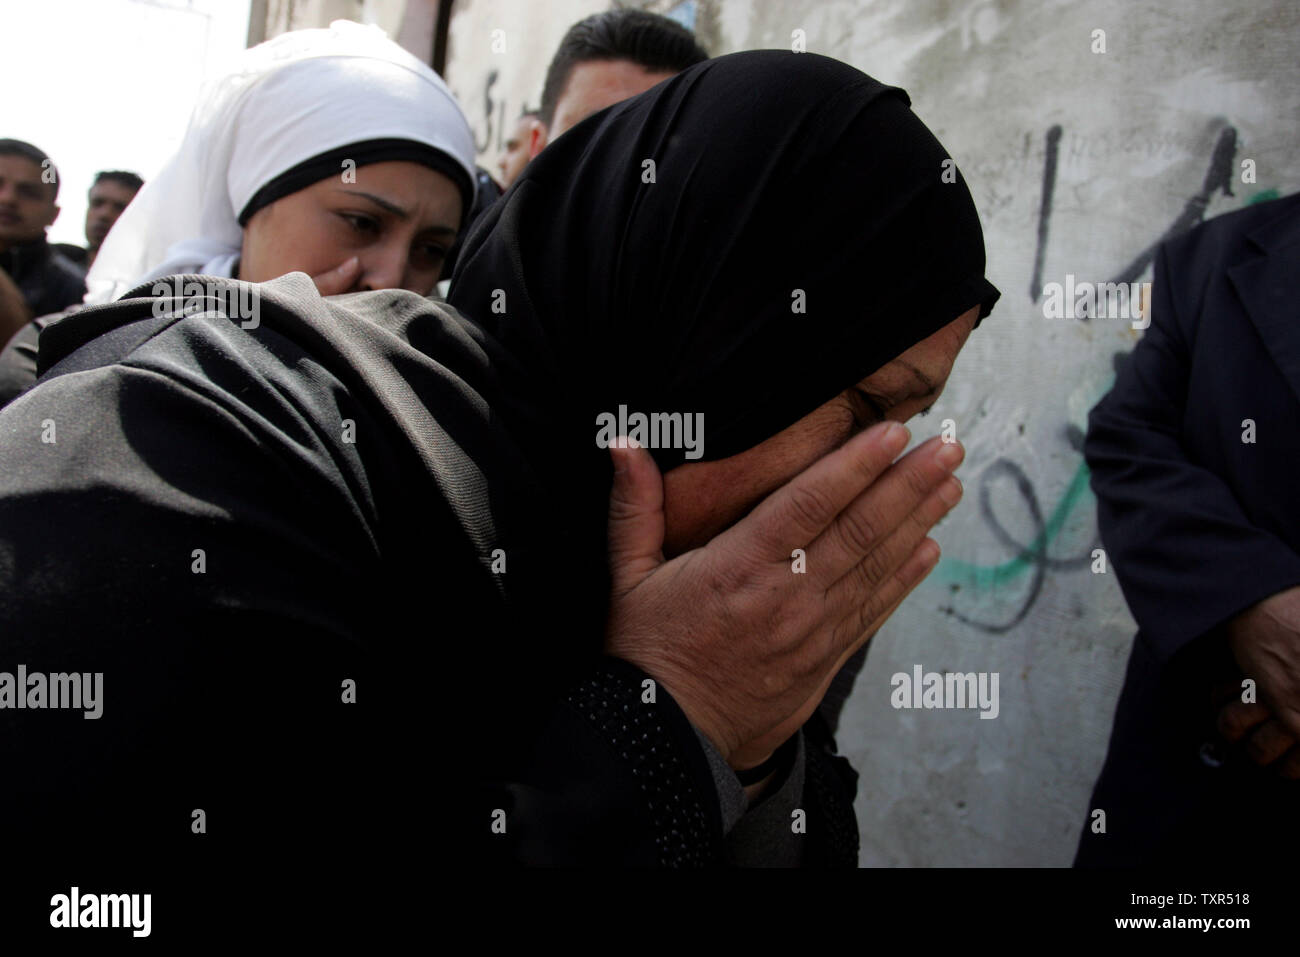 Palestinian women mourn the death of a relative, one of